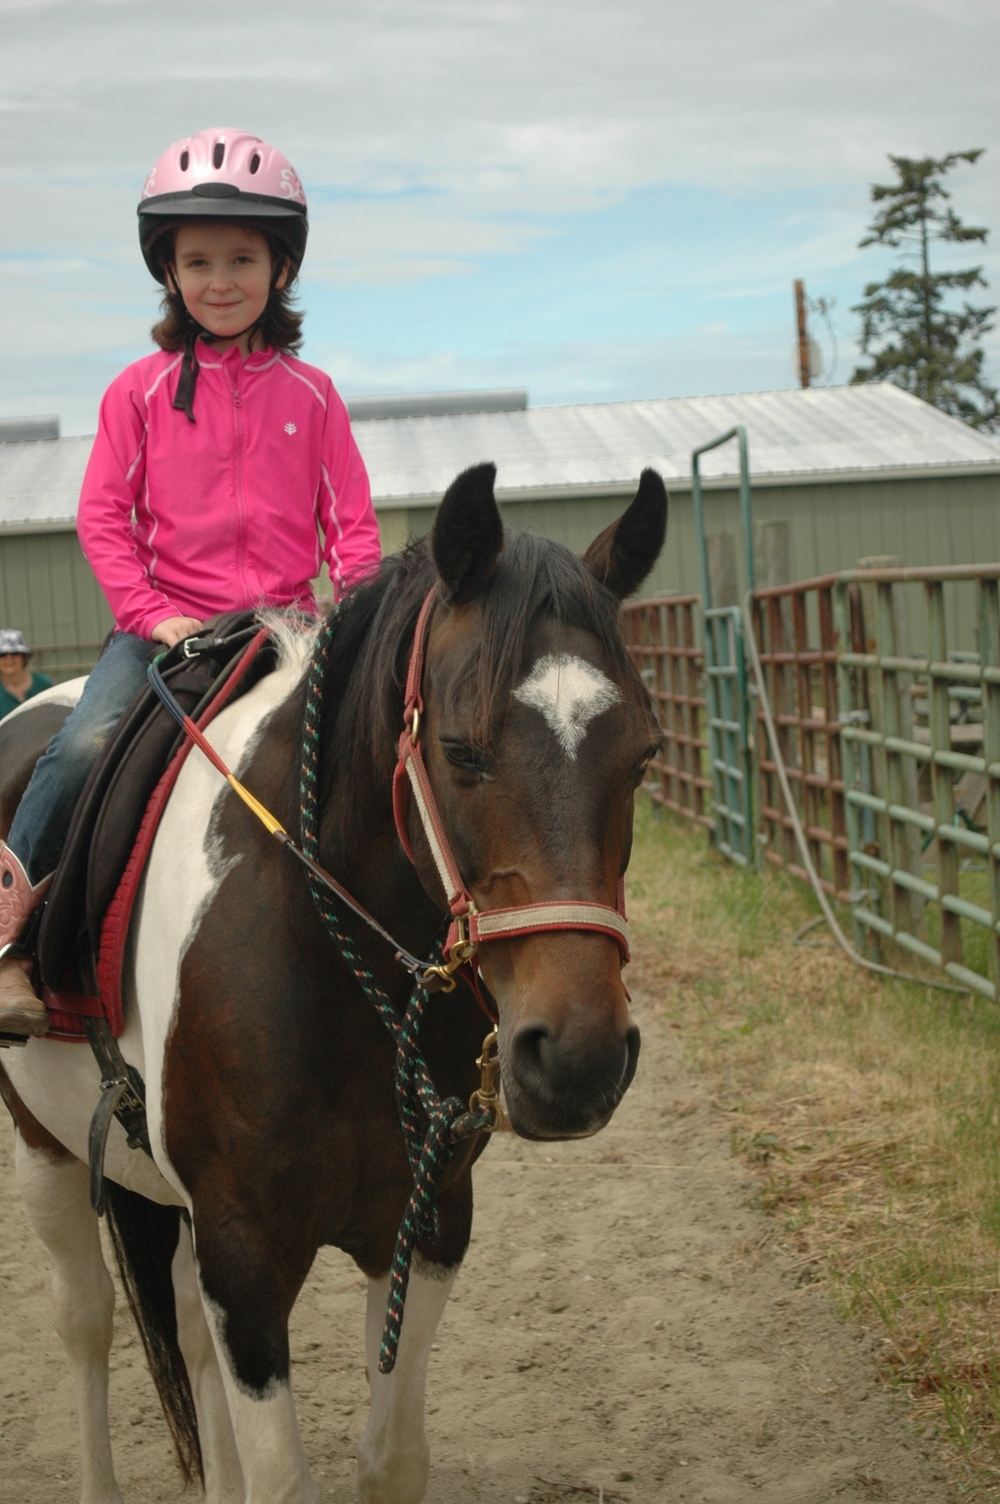 Here's Willow with her new best friend Ava. Willow is taken care of by our board member Karen and her husband Glenn.